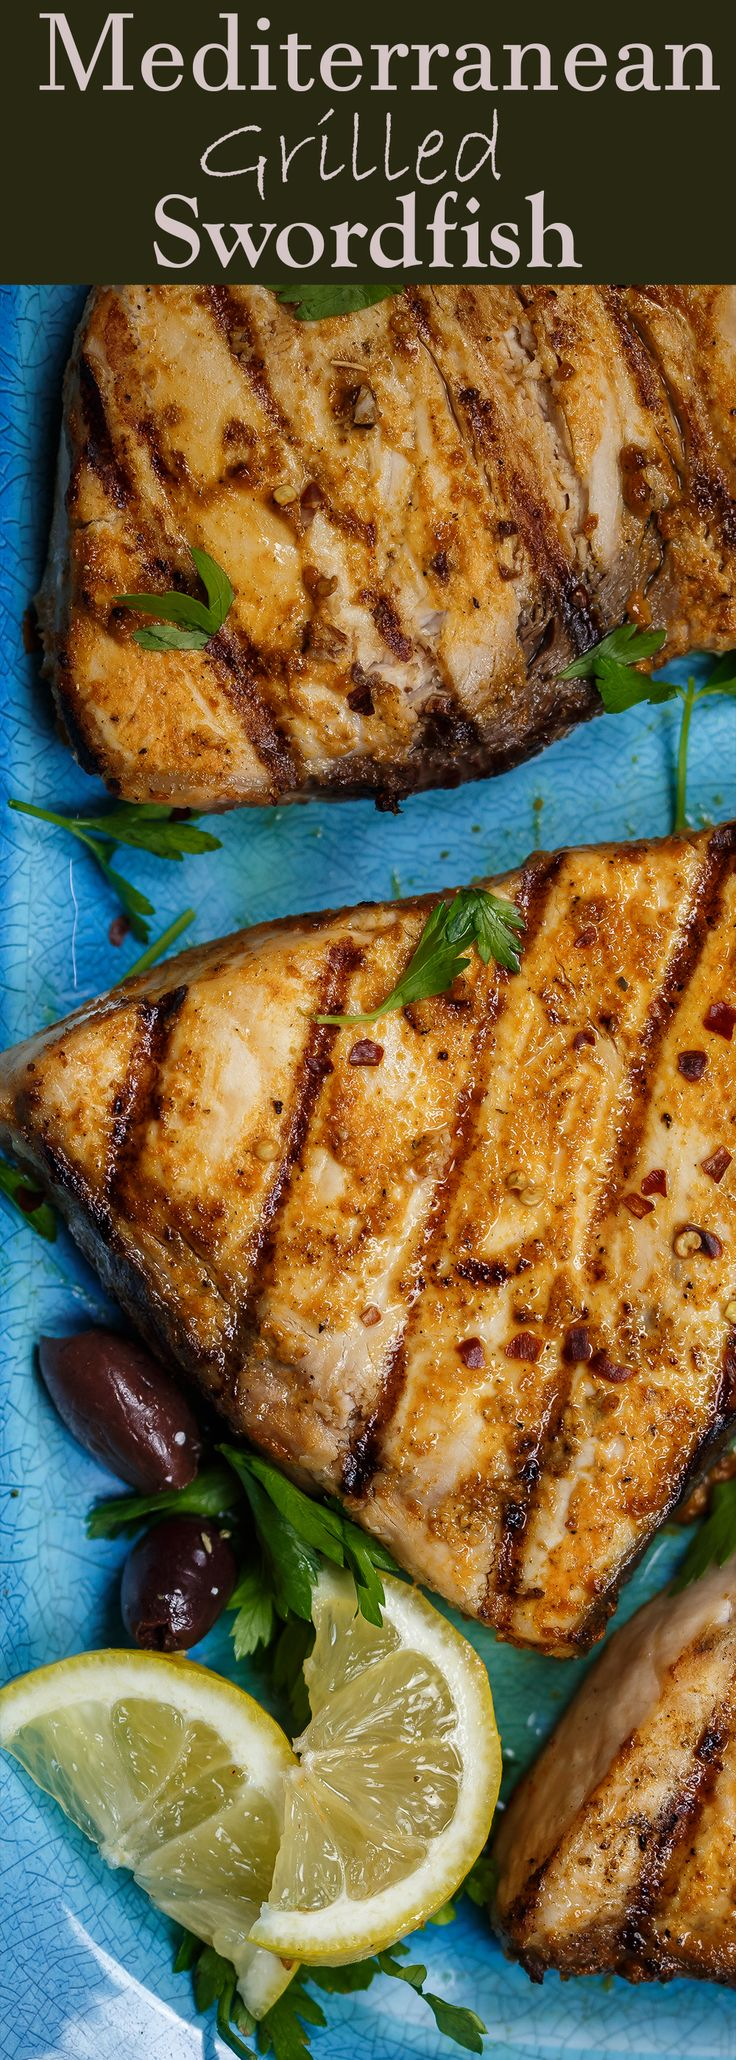 Grilled Swordfish Recipe with a Mediterranean twist   The Mediterranean Dish. Grilled swordfish infused with Mediterranean spices, fresh garlic, and good EVOO. One easy fish recipe that is every bit as flavorful and healthy. See the full recipe on TheMediterraneanDish.com